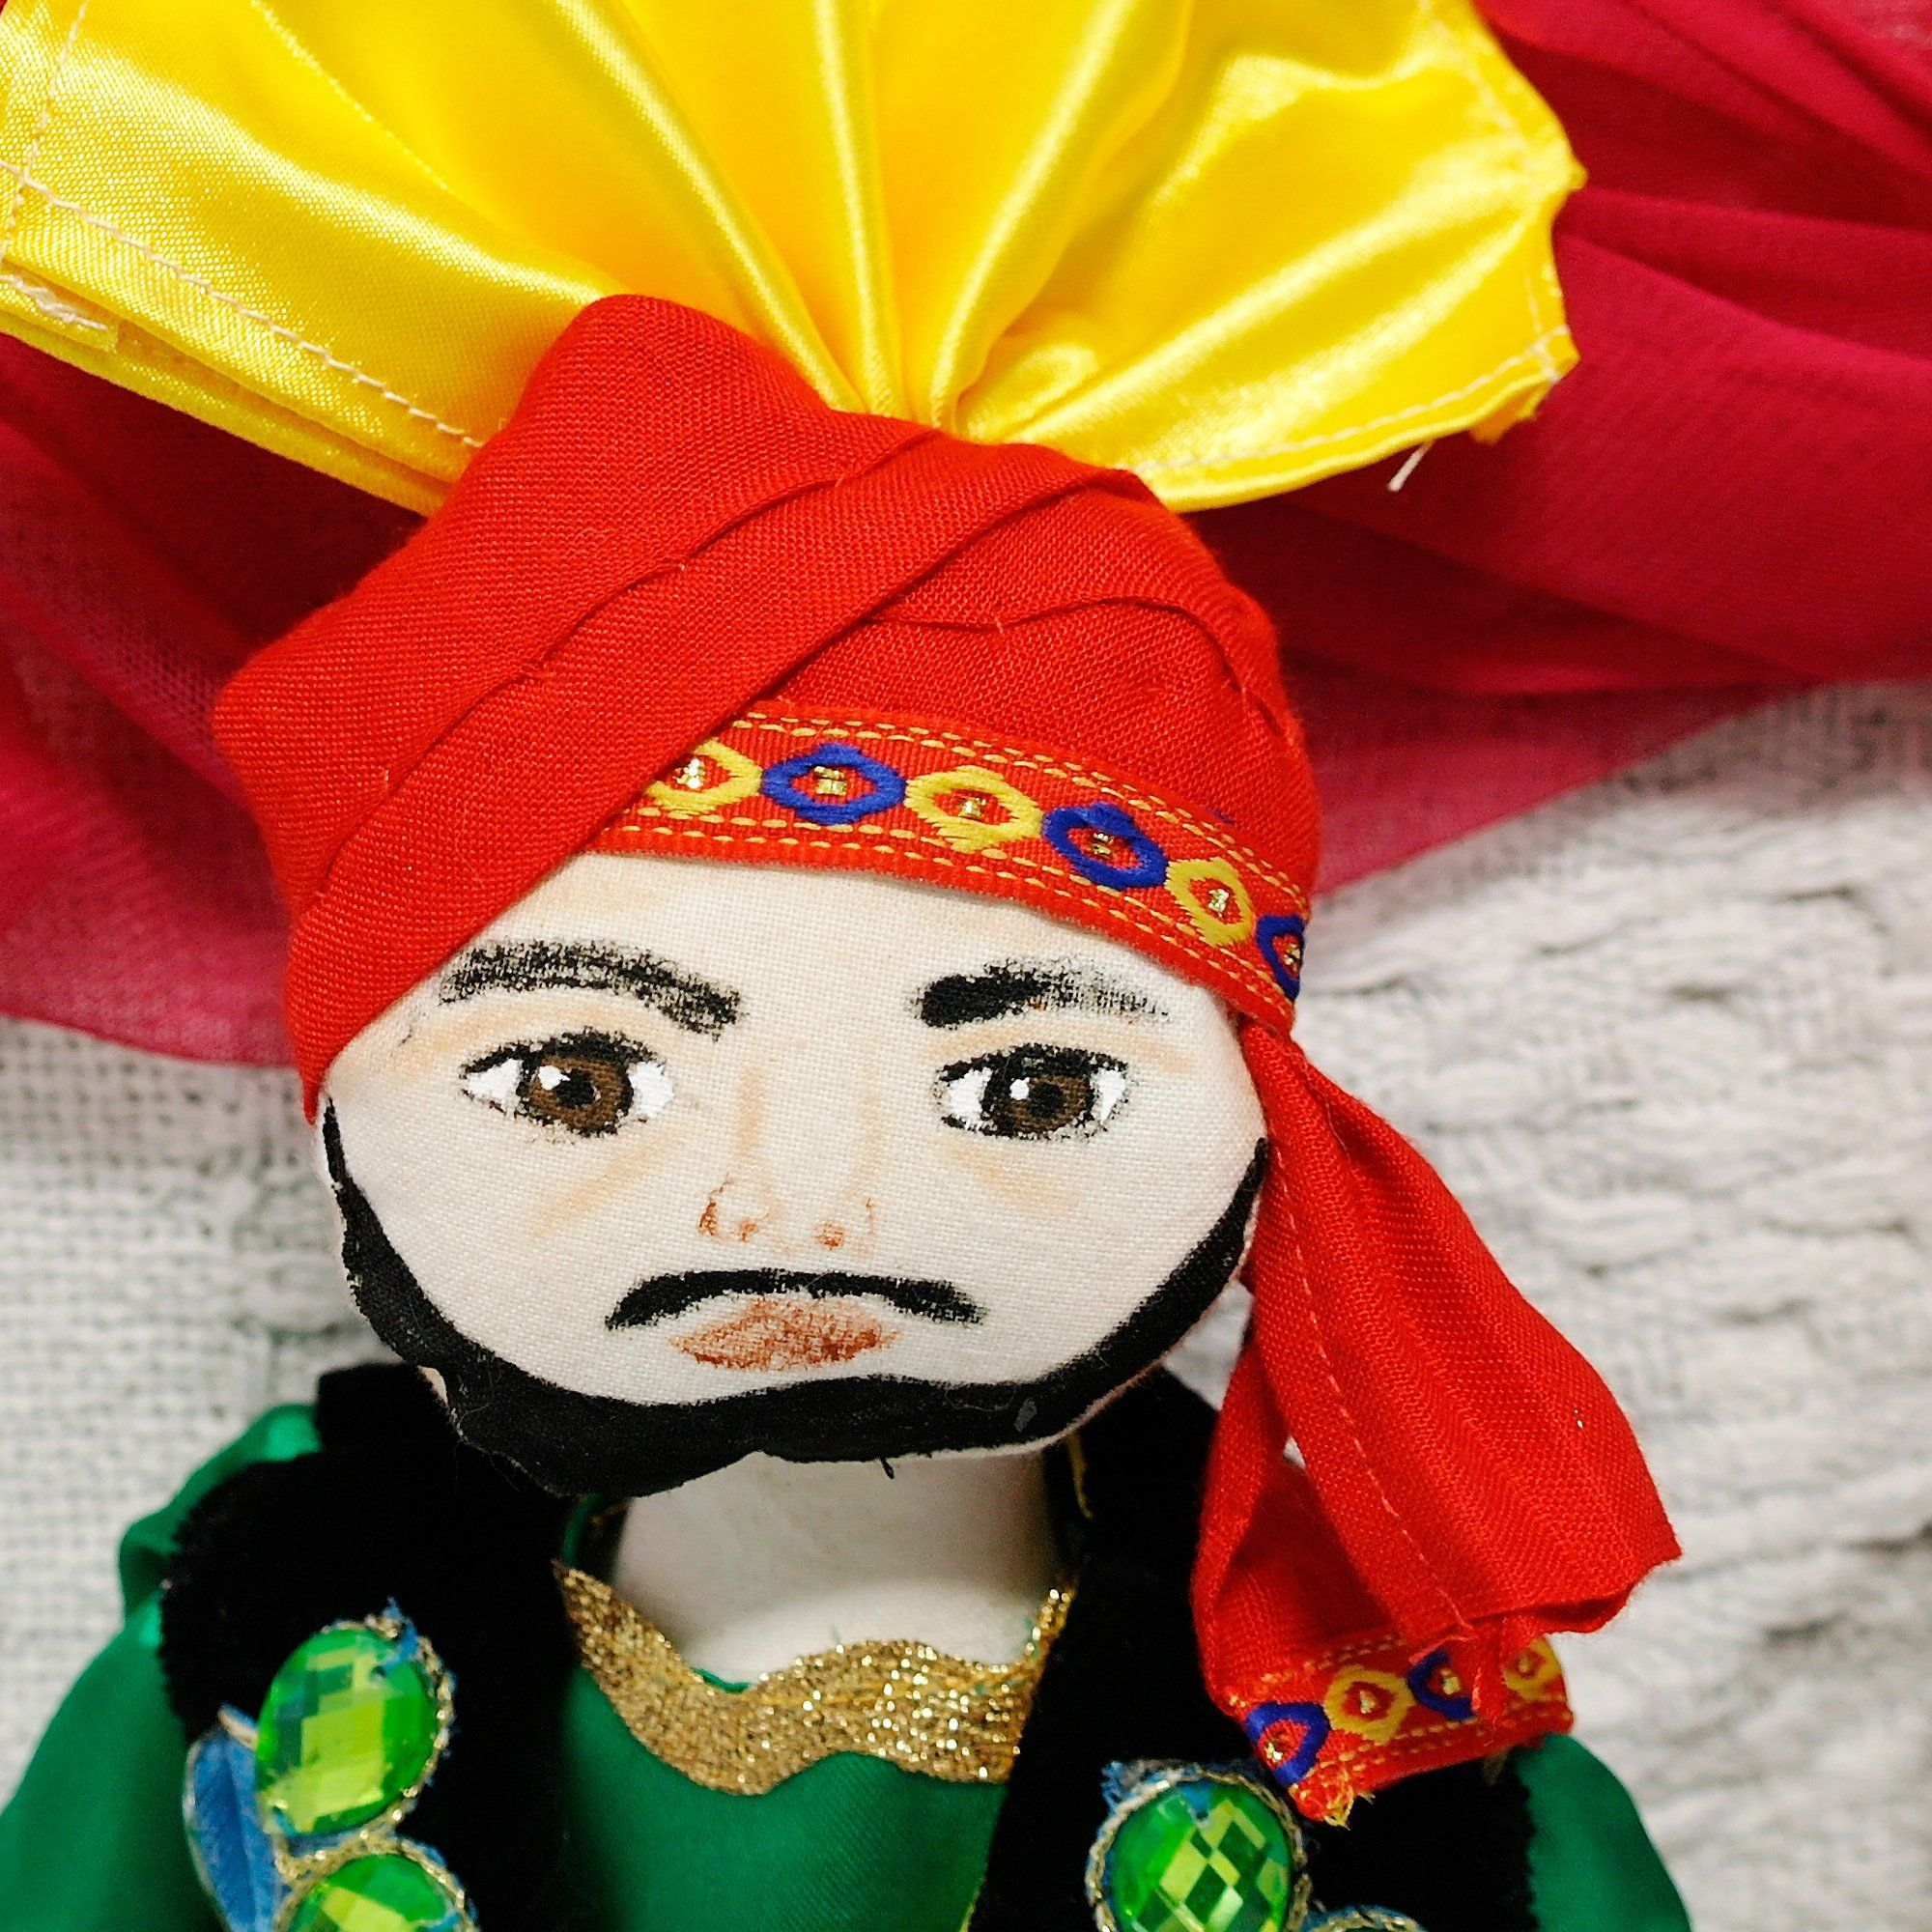 Bhangra Doll,Male Indian Doll, Handmade Dancer, Cloth Art Doll, Ethnic male doll, Authentically handmade Indian dancer, Exotic male dancer is part of Male Clothes Art -  Namaste , My name is Anokh and I'm from the third generation of Punjabi Dancers We sing and dance a lot at home and we all play the dholki I love football and cricket and play for my local team  My dhoti suit is made from satin and the waistcoat is velvet with a hand embroidered emblem on the back of our dance group It is fully lined We have a routine where we take them off at the end of the dance and just throw them high up into the air  Ha !We dance at parties weddings and are now taking bookings for Barmitzvahs! Anokh 114gms Dhoti, Shirt, Waistband Satin Waistcoat Velvet Satin Sequins Headdress Satin Cotton Height 40cm All doll cloth bodies are all made of cotton, Waldorf Jersey, Tilda Fabric or Kona Cotton  All doll filling is Supa Soft It is100% polyester filling Nonallergic, nontoxic flame retardant and manufactured to B S  1425, B S  5852 & EN 71  PT 2 All hair is made of Acrylic wool  Faces are hand embroidered or handpainted using textile paints  All jewelry is a combination of sequins, beads, pearls and diamante and artificial jewelry  All footwear is made of felt, wood or fur